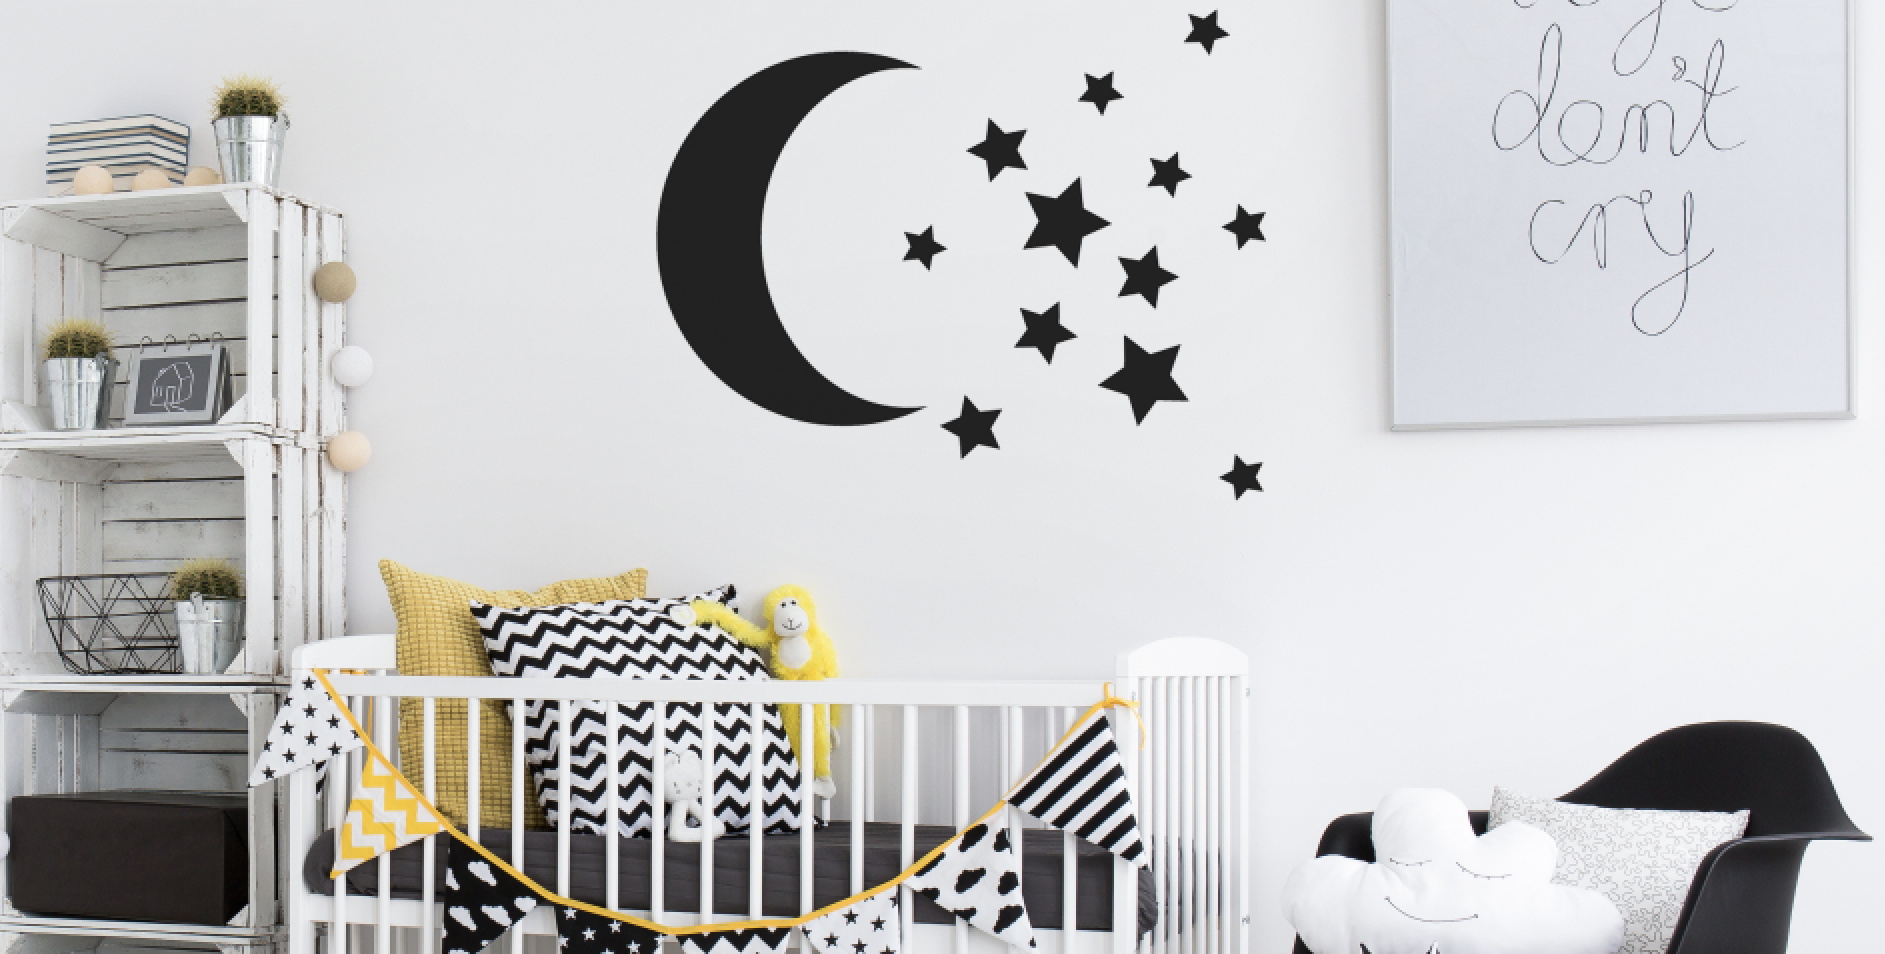 Black and white elements complement each other in this monochrome nursery